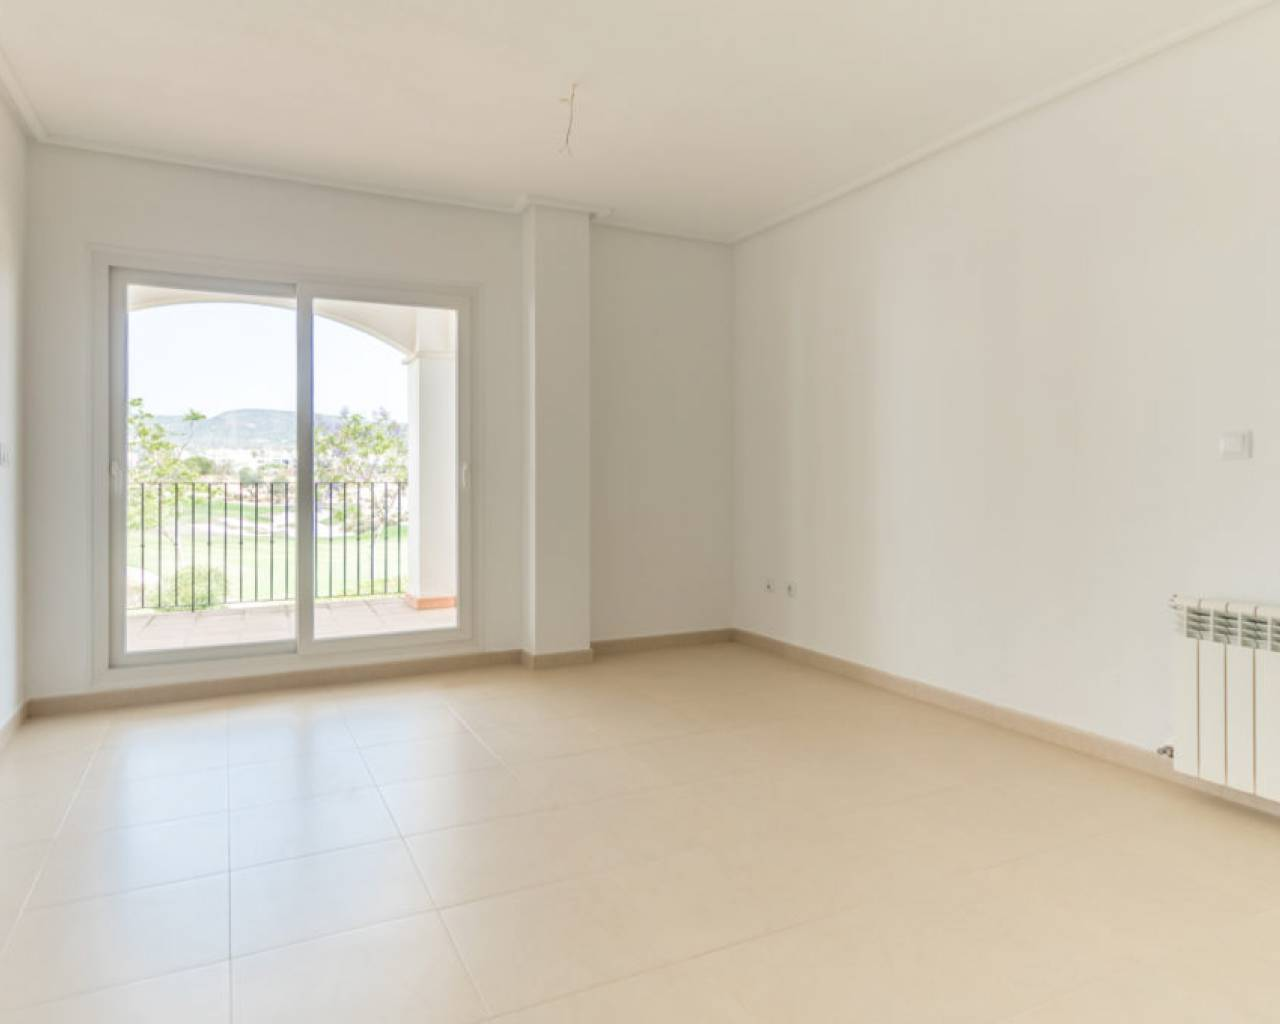 New build - Apartment - Murcia Services Is Your One Stop For All Real Estate Needs In Murcia!